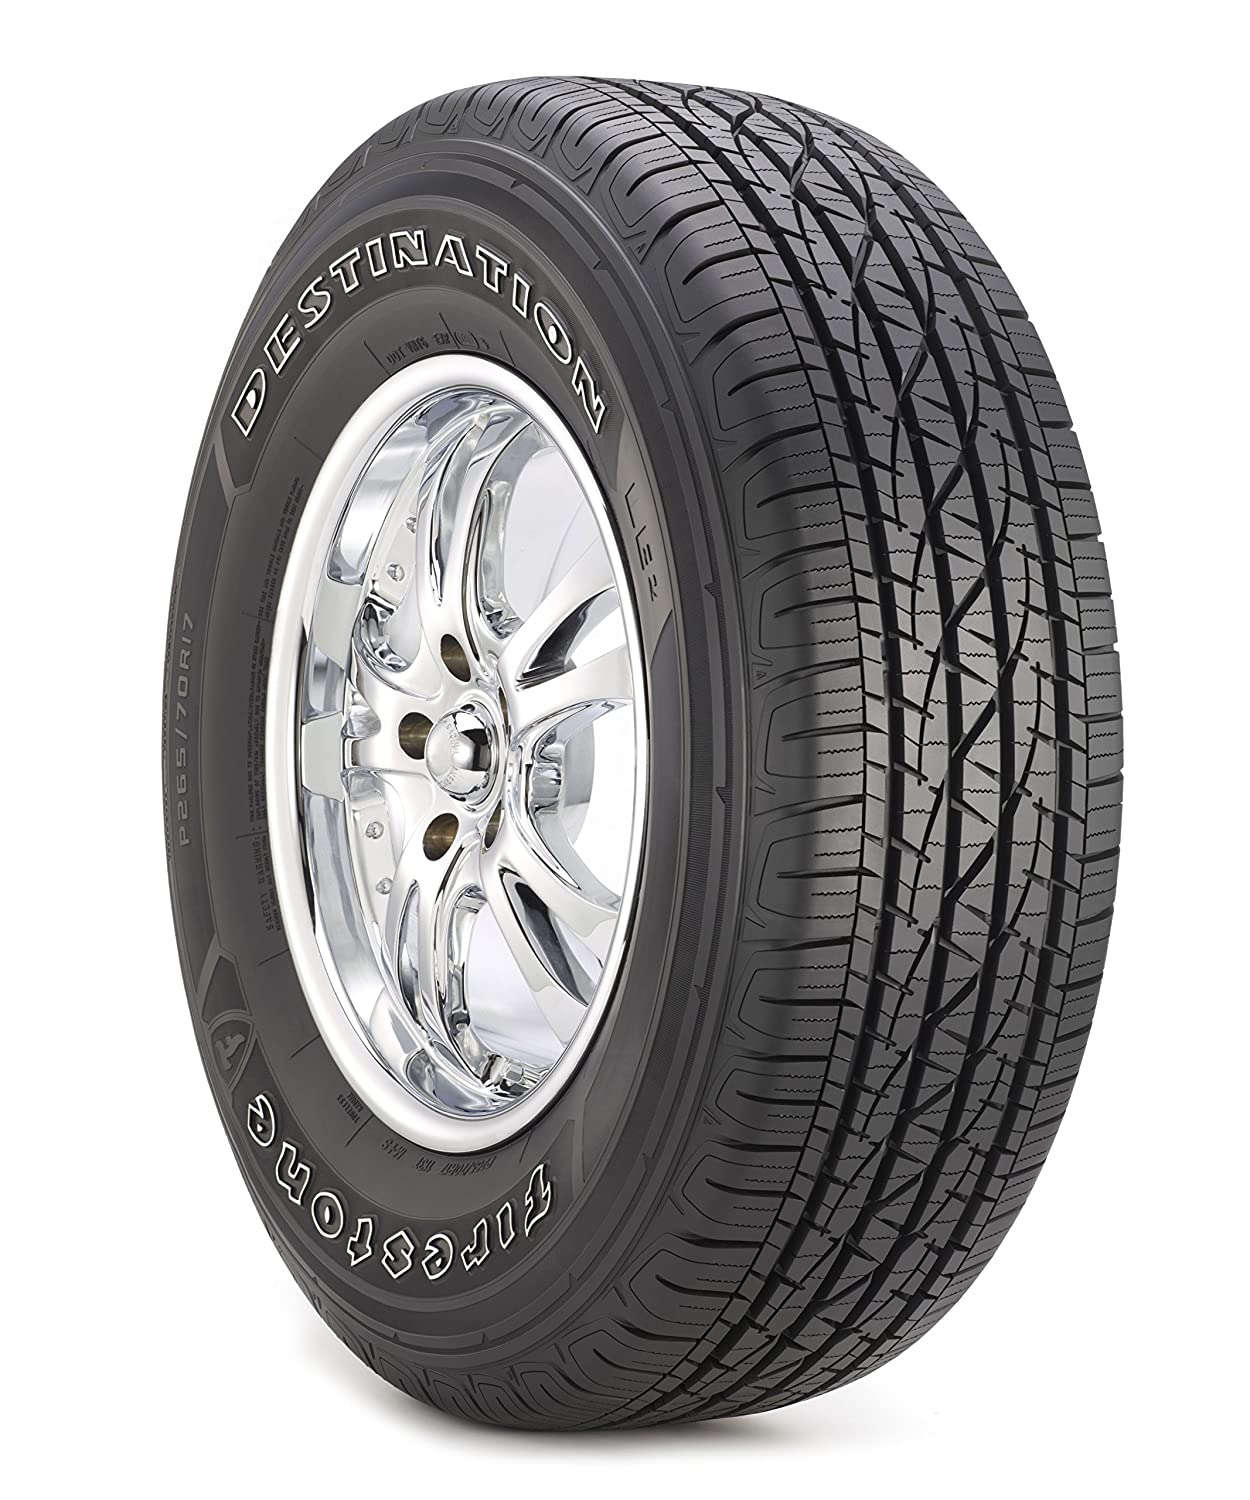 255//65R17 108T Firestone Destination LE 2 All-Season Radial Tire